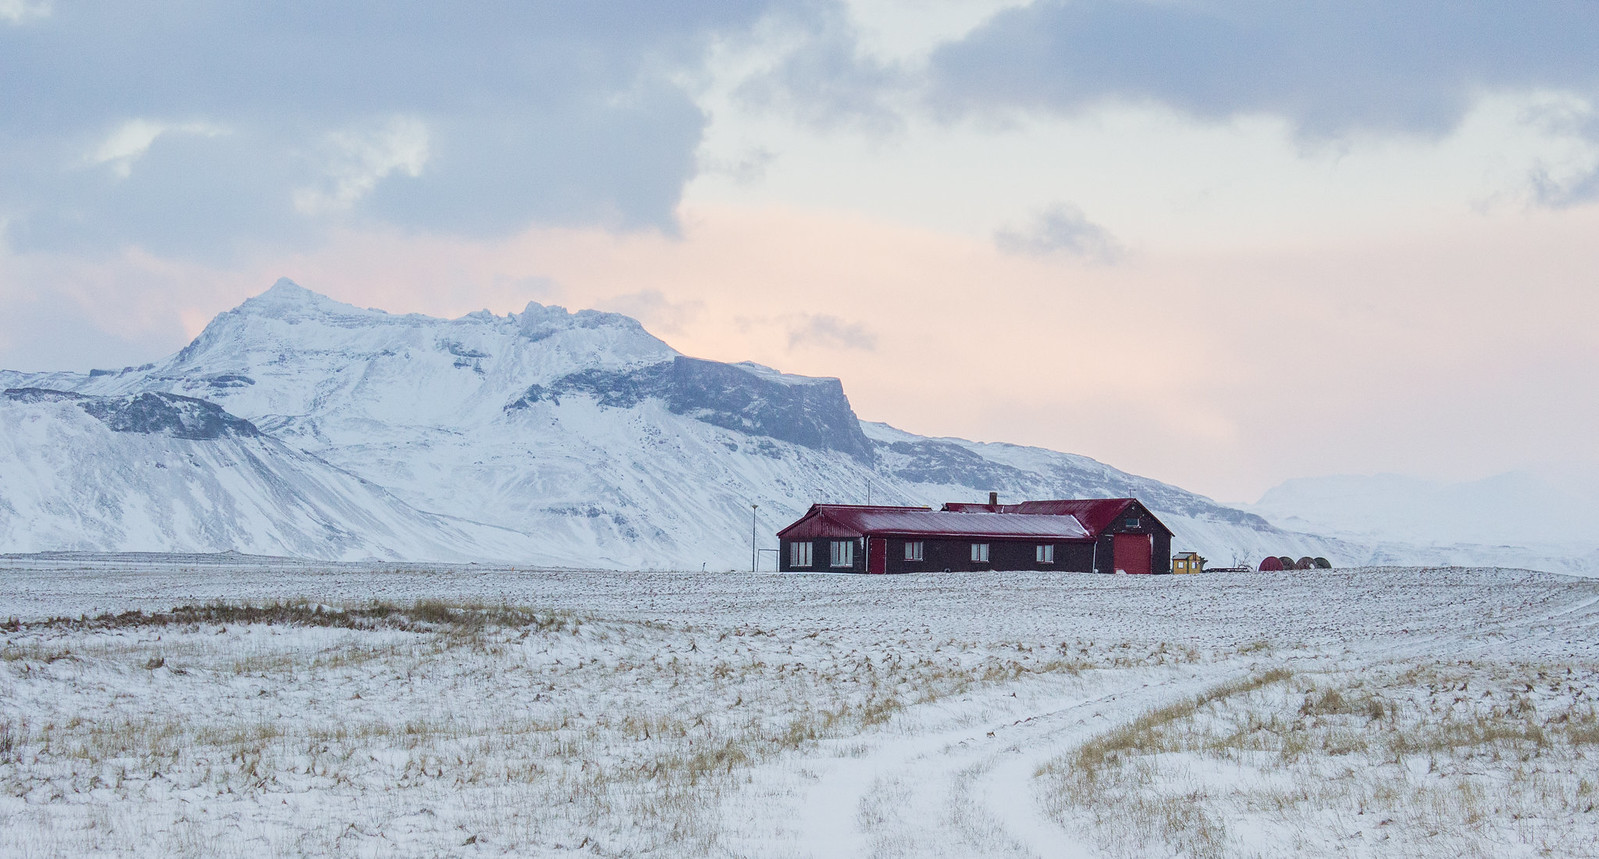 A red house/barn in Iceland's Snaefellsnes Peninsula in December